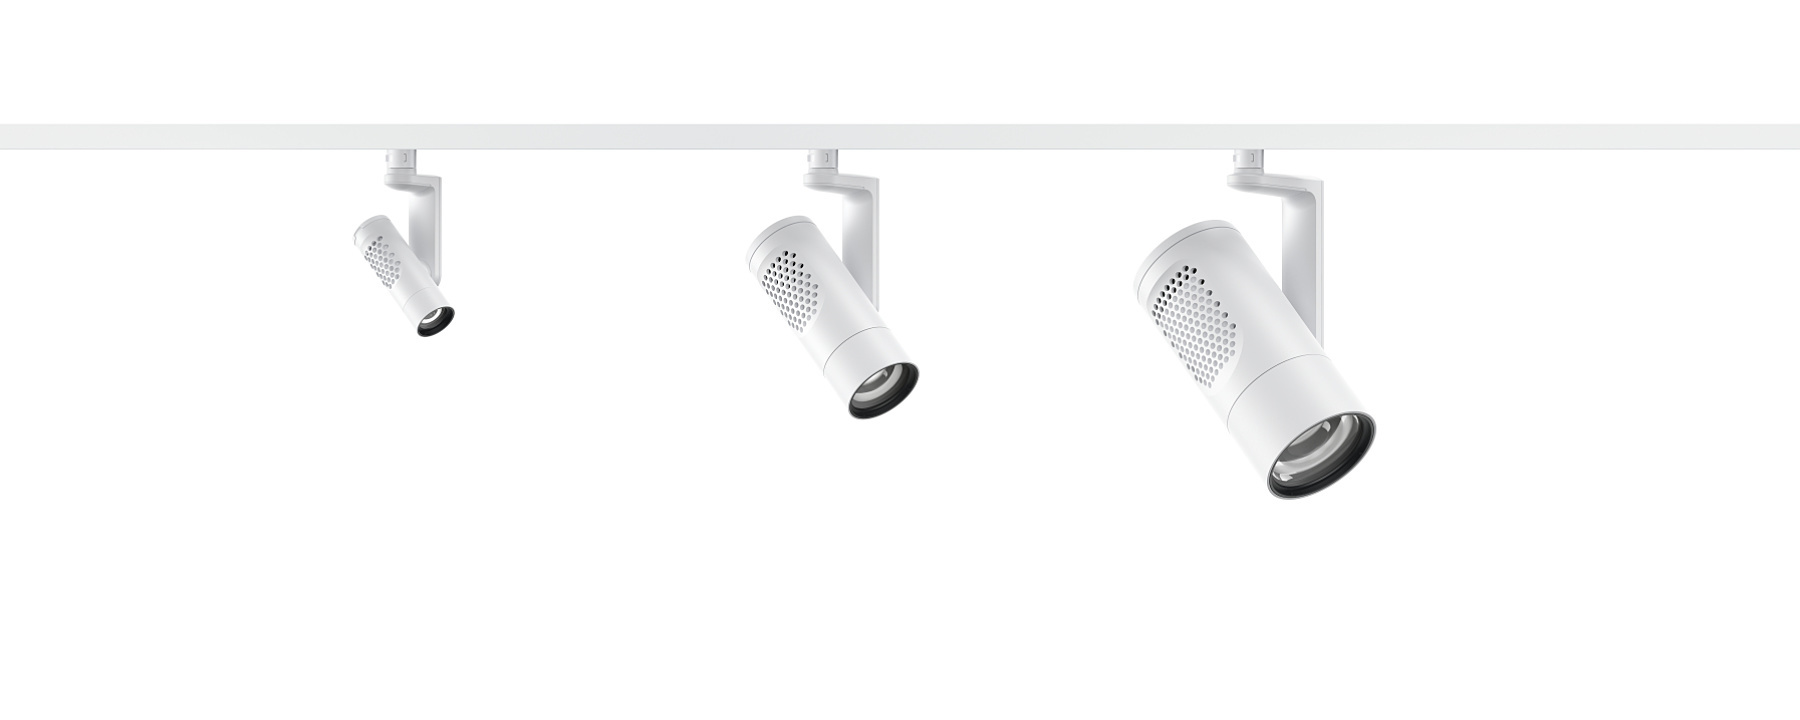 Eclipse 48V - Luminaires for track